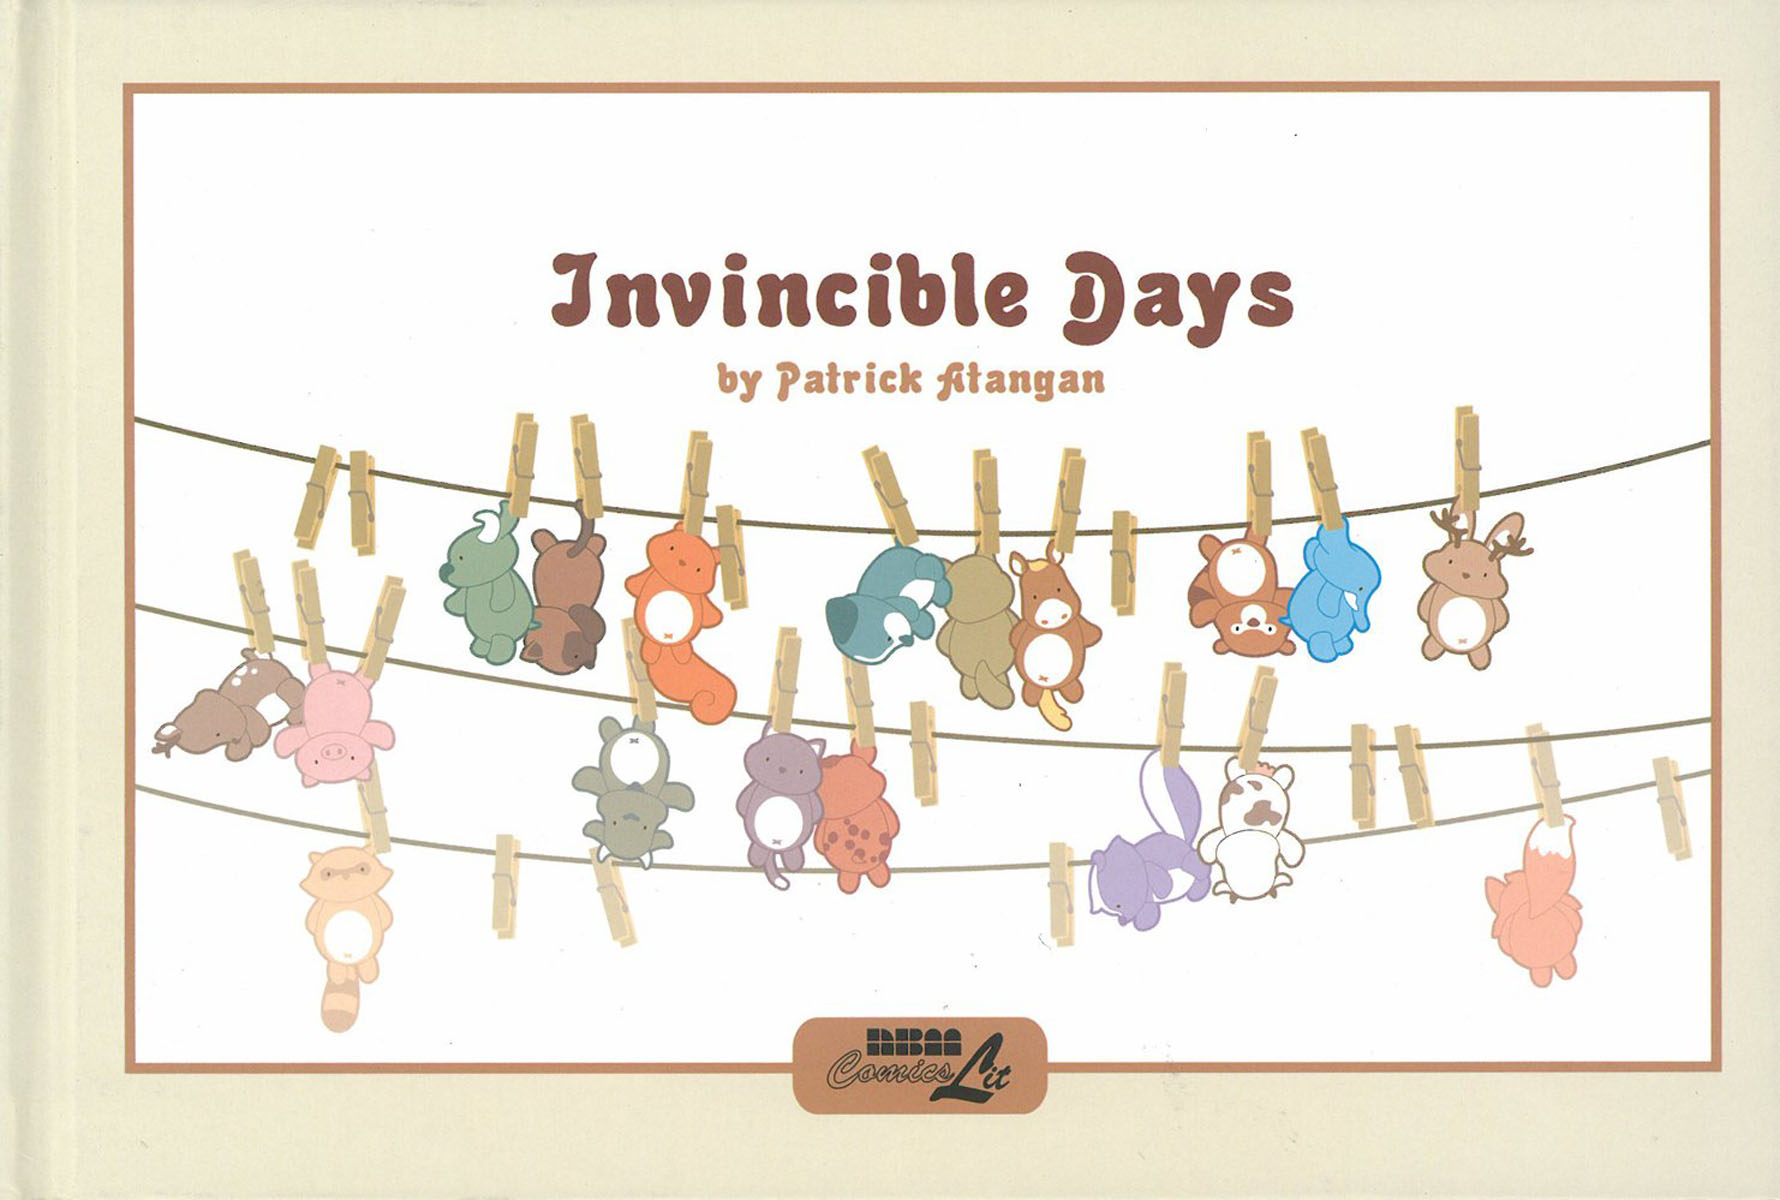 Invincible Days these days are ours